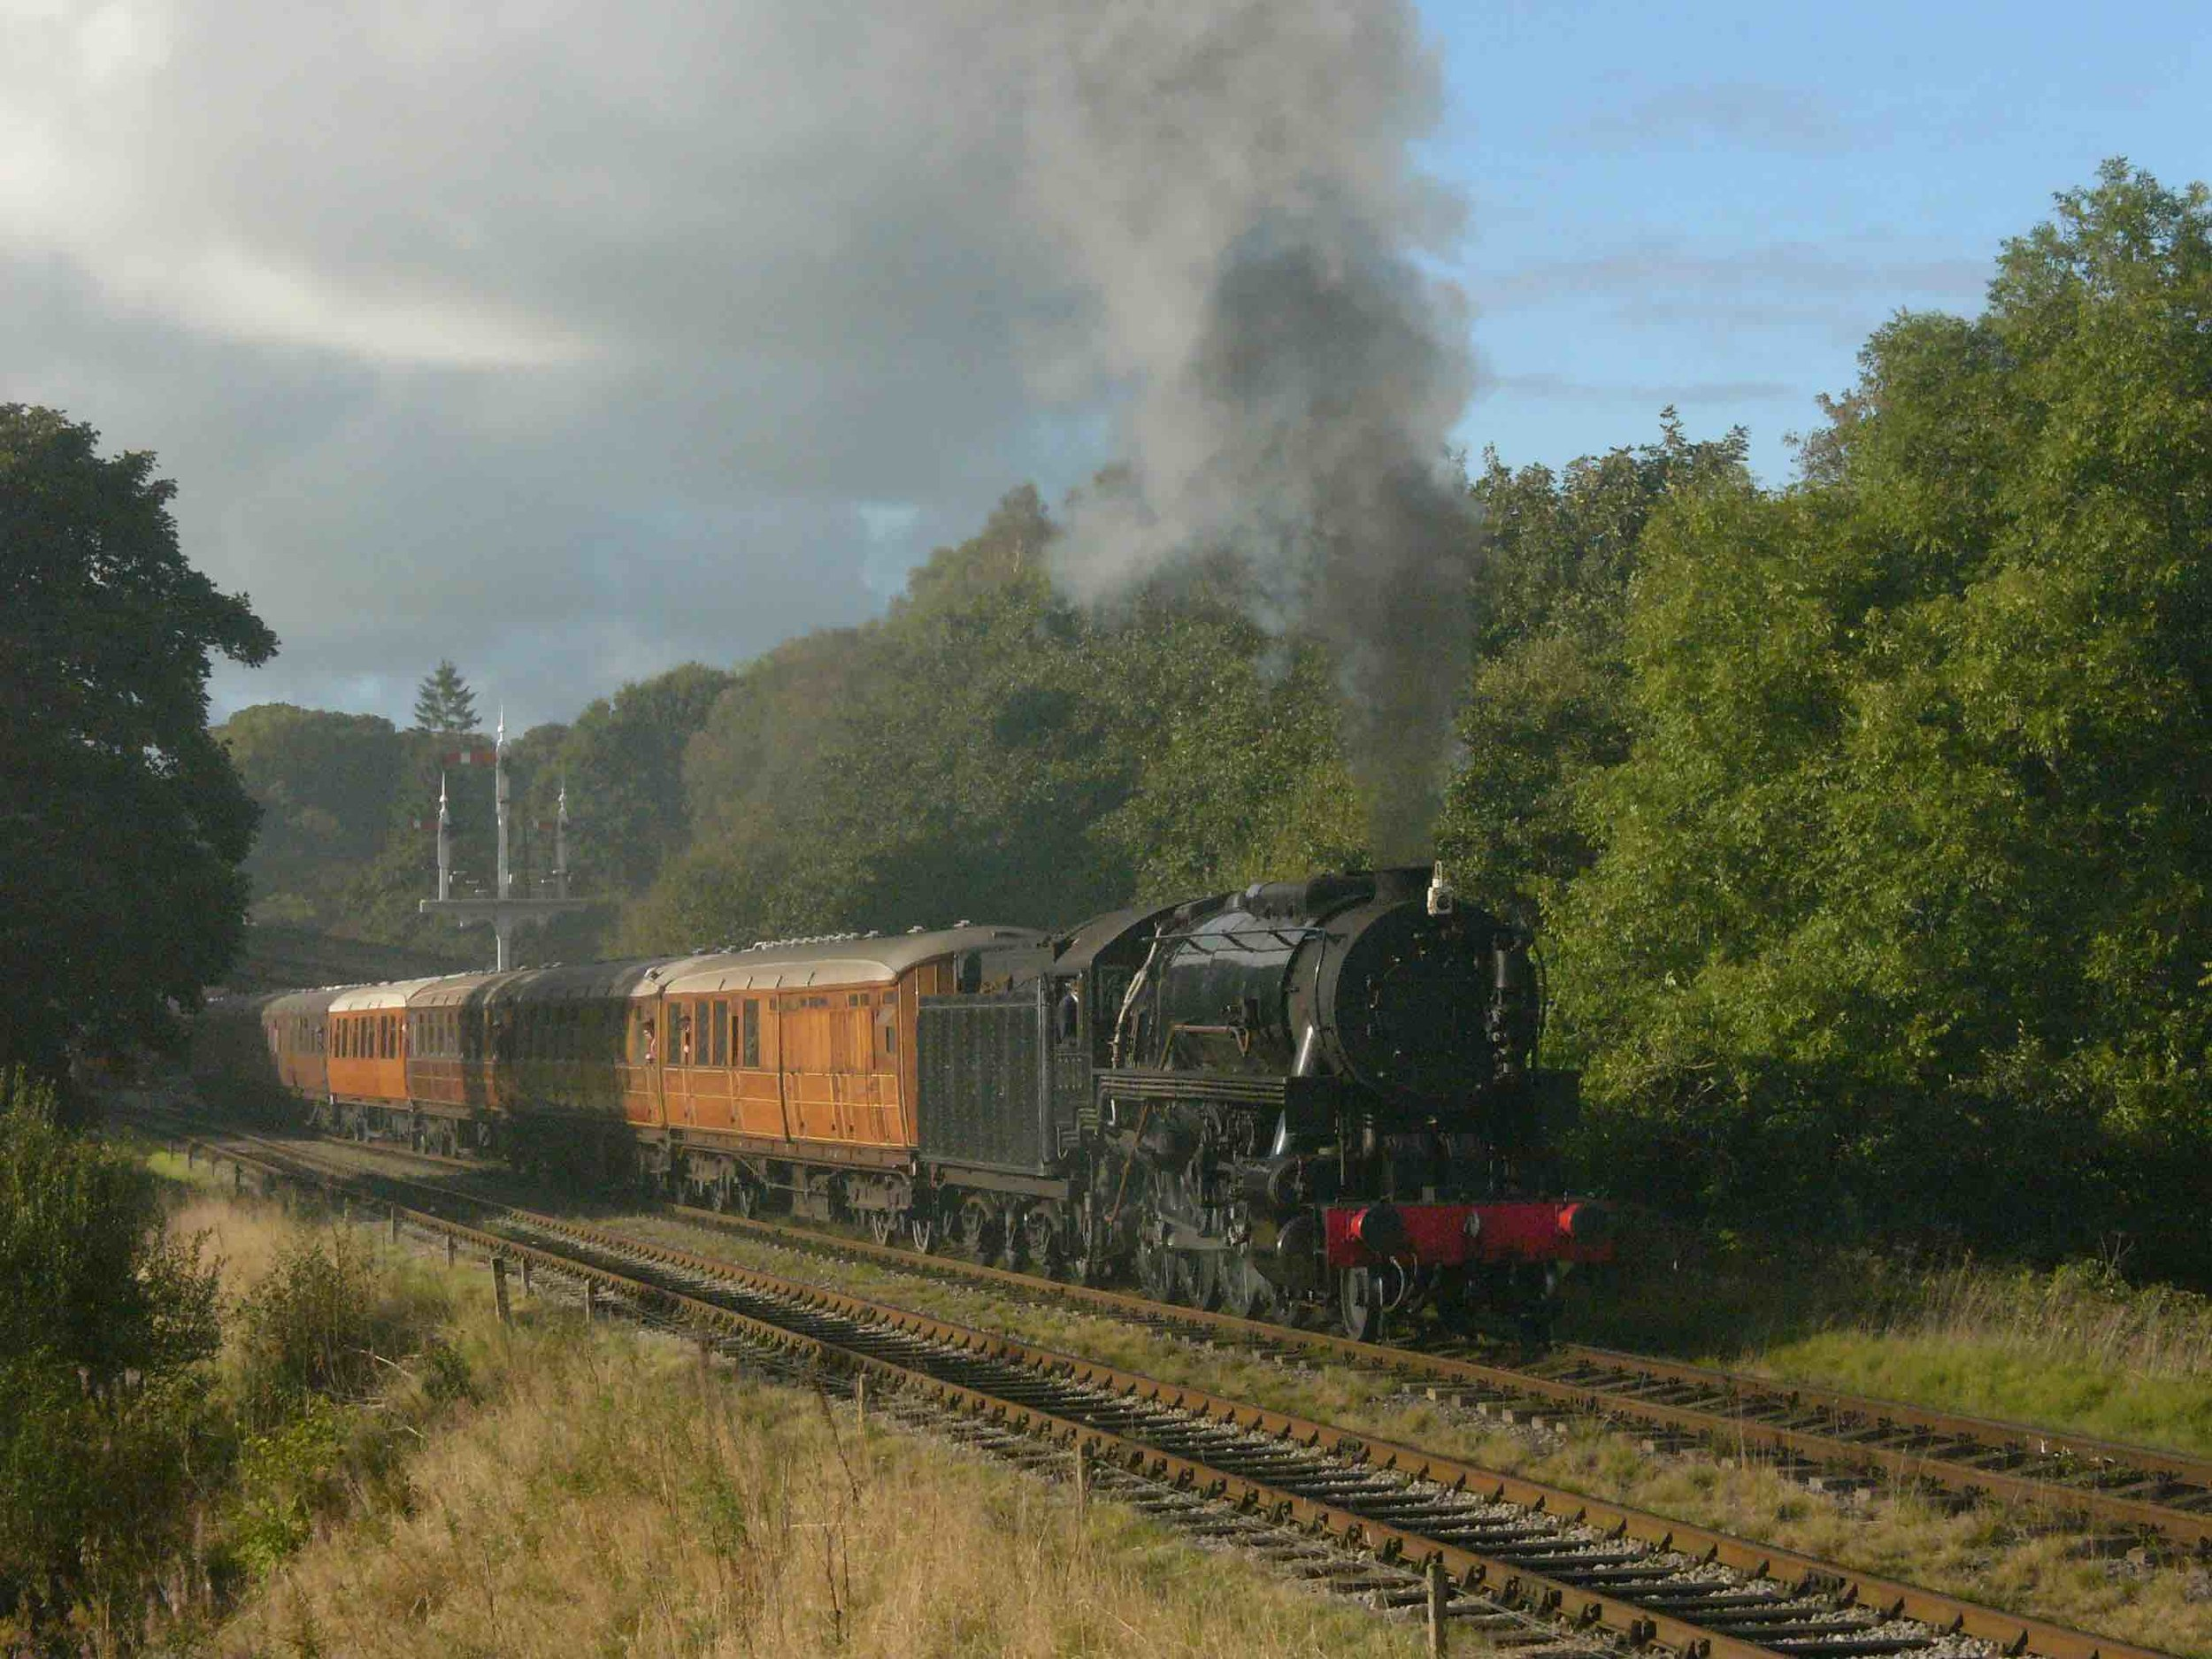 Out of action: Churnet Valley Railway-based 'S160' No. 6046 has become the third visiting locomotive to drop out of the 'GlosWarks' 'Cotswold Festival of Steam' gala. It is pictured leaving Goathland at the North Yorkshire Moors Railway's autumn gala on October 2 2016. TOBY JENNINGS/SR